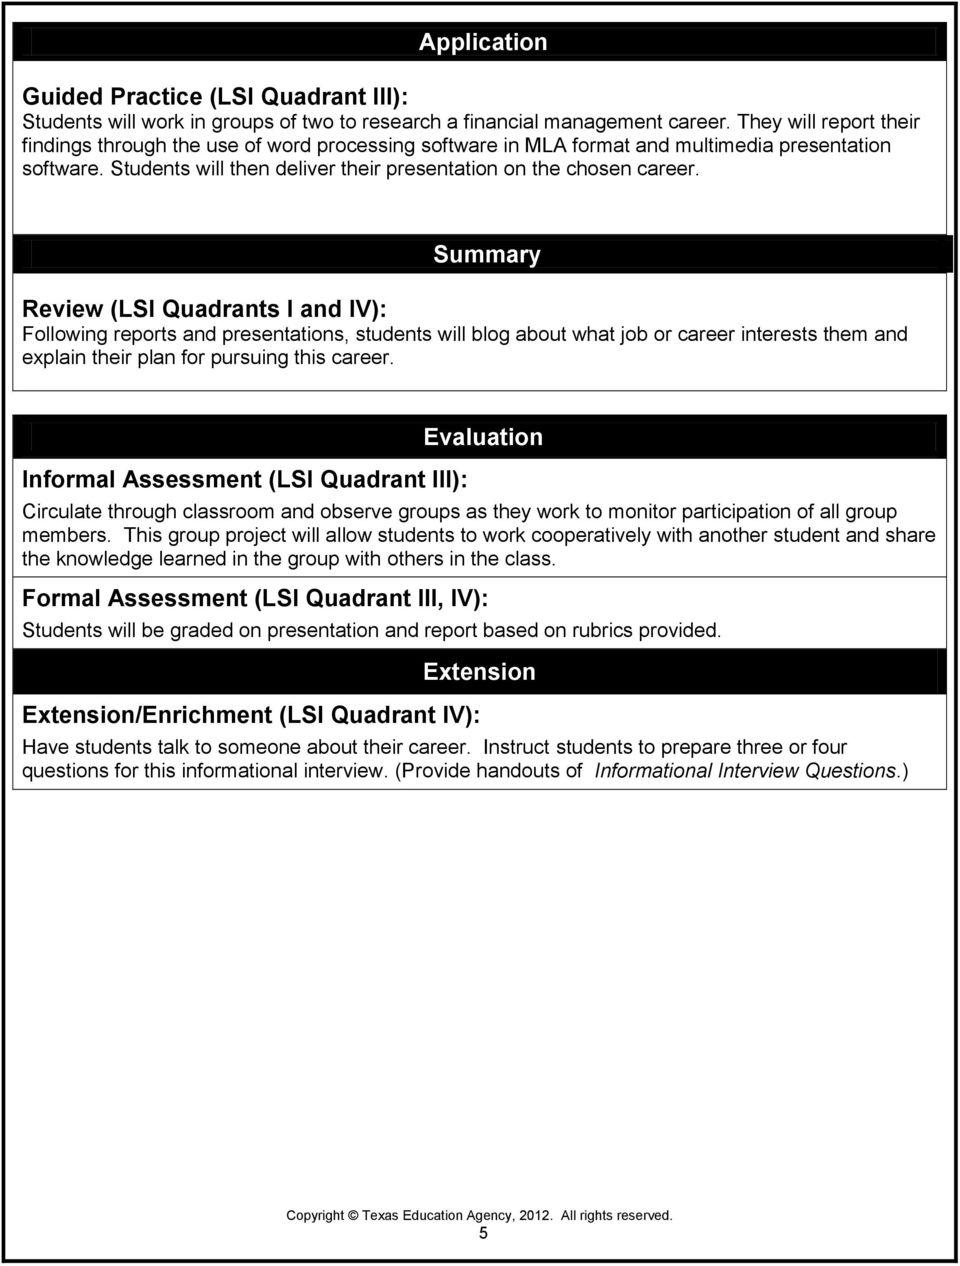 Summary Review (LSI Quadrants I and IV): Following reports and presentations, students will blog about what job or career interests them and explain their plan for pursuing this career.